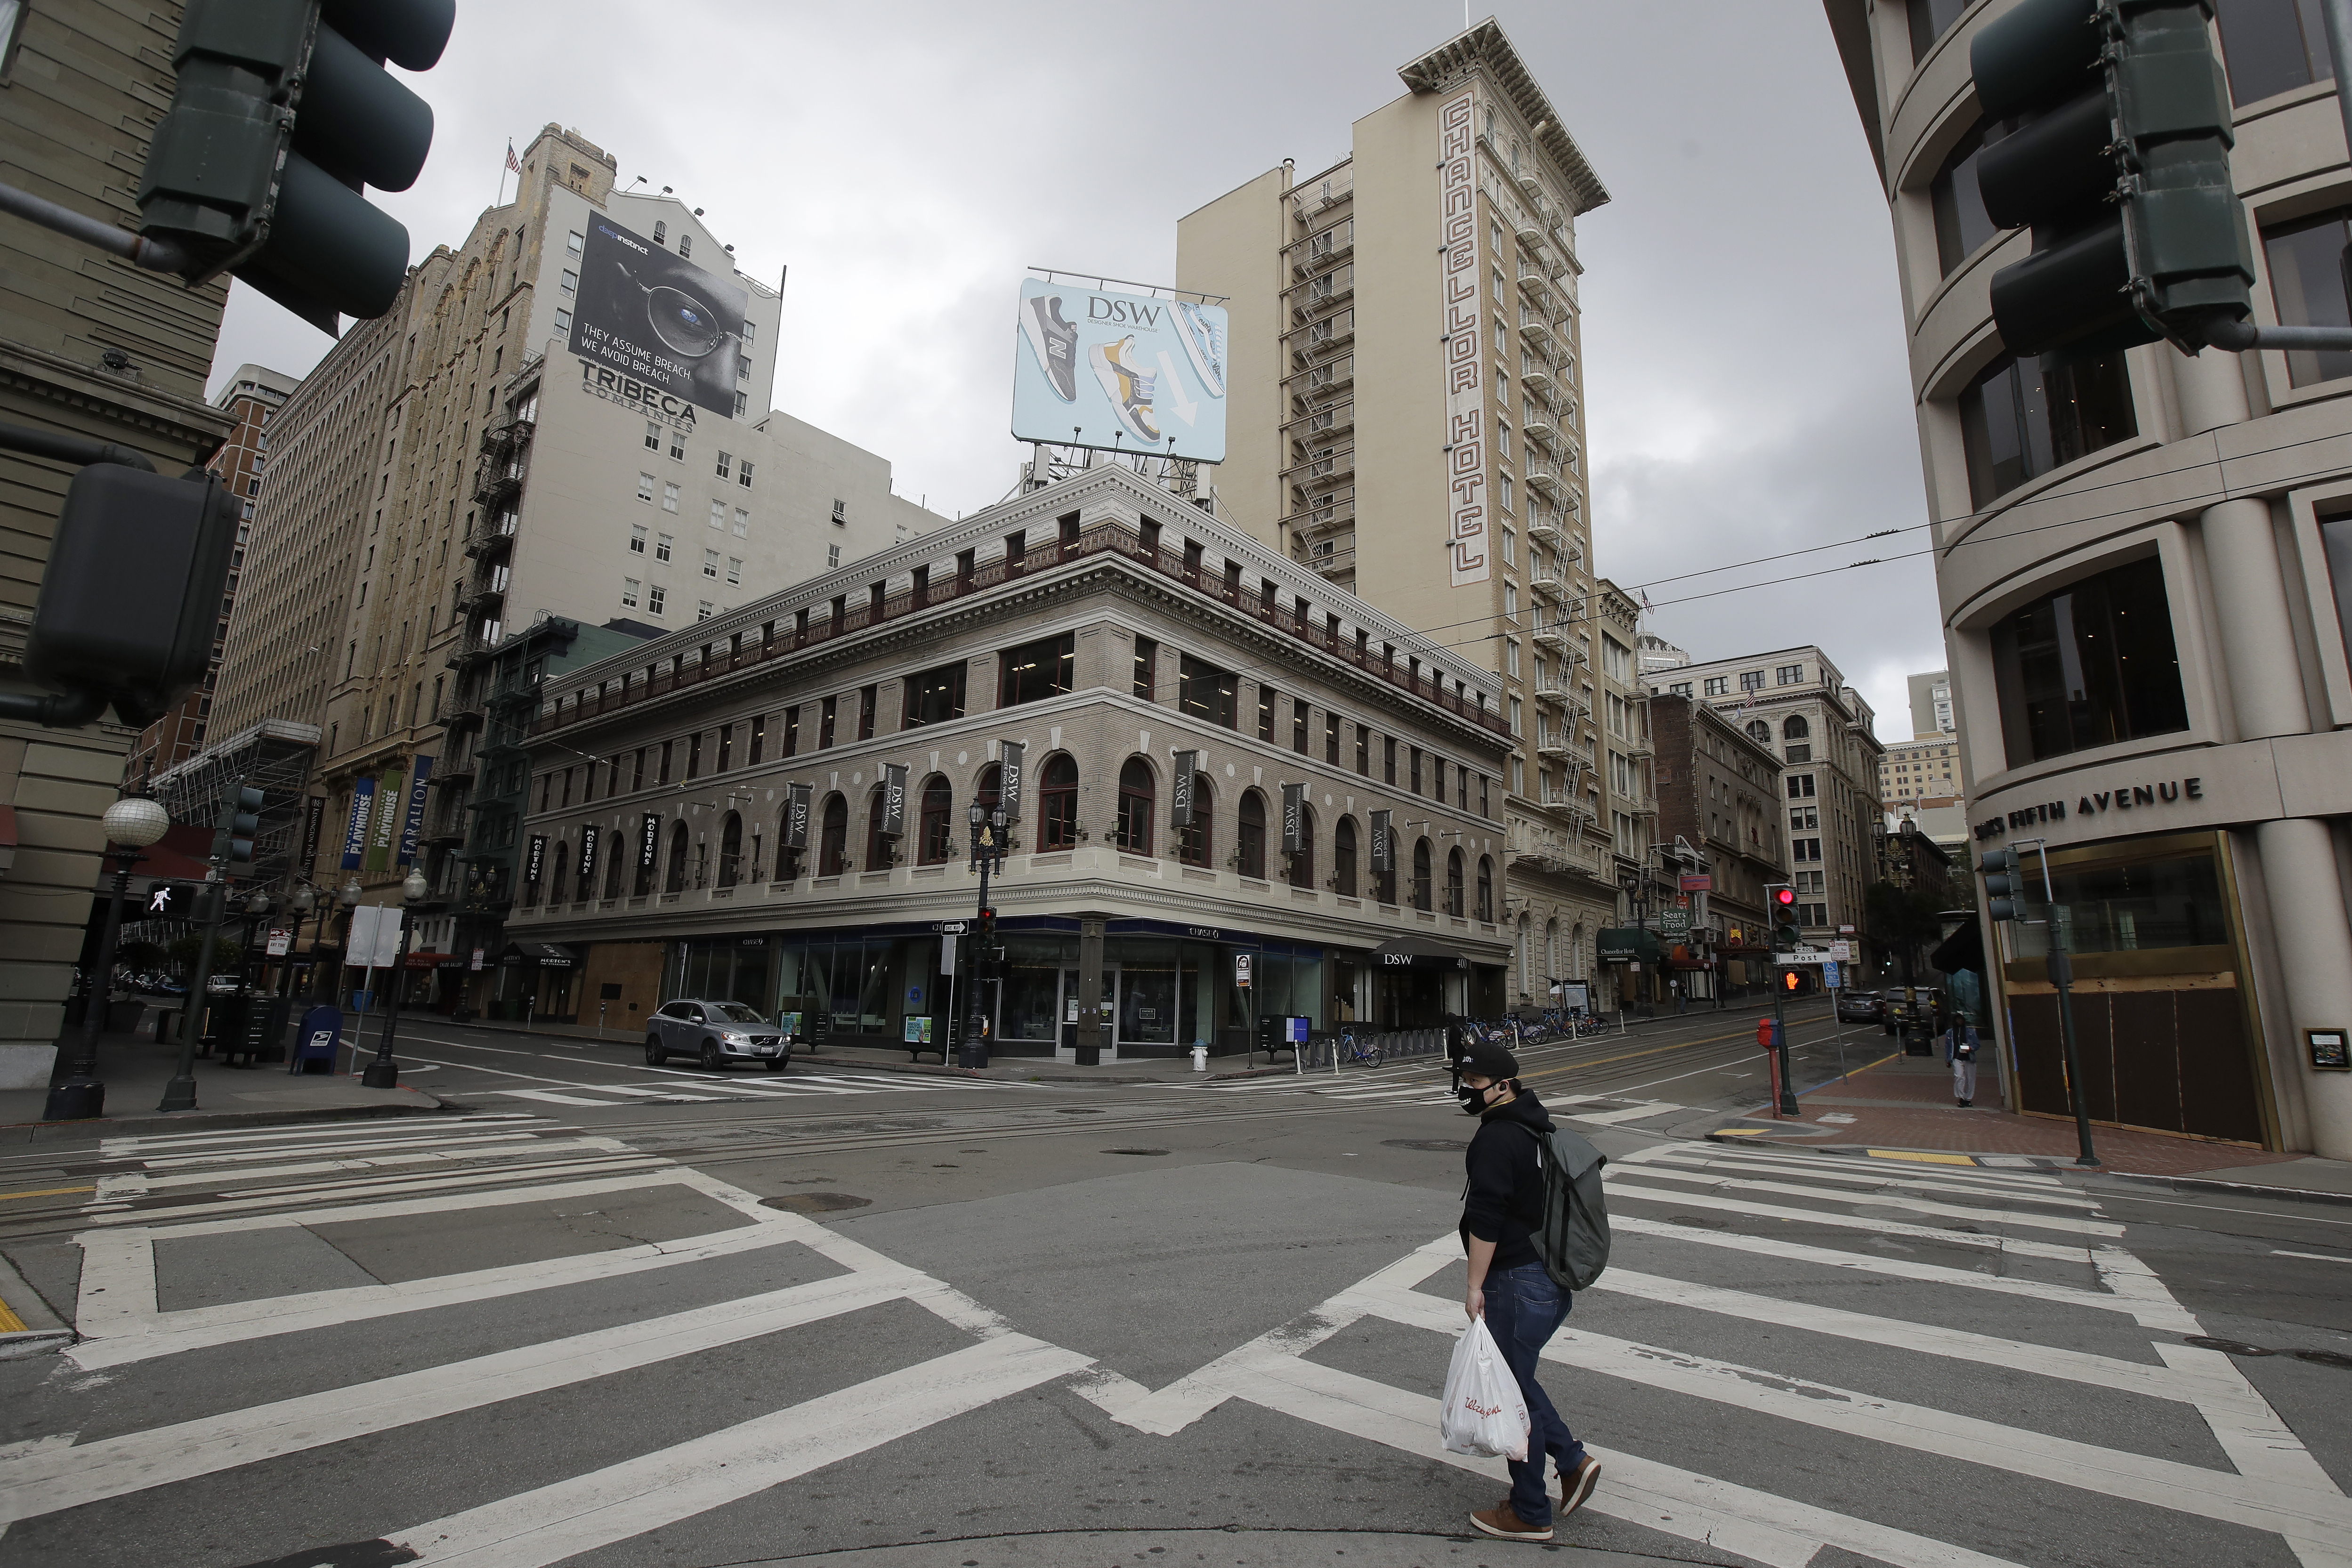 A man wears a mask while crossing an empty intersection in the Union Square retail area of San Francisco, Sunday, March 29, 2020. Californians endured a weekend of stepped-up restrictions aimed at keeping them home as much as possible while hospitals and health officials scrambled Sunday to ready themselves for a week that could see the feared dramatic surge in coronavirus cases. (AP Photo/Jeff Chiu)